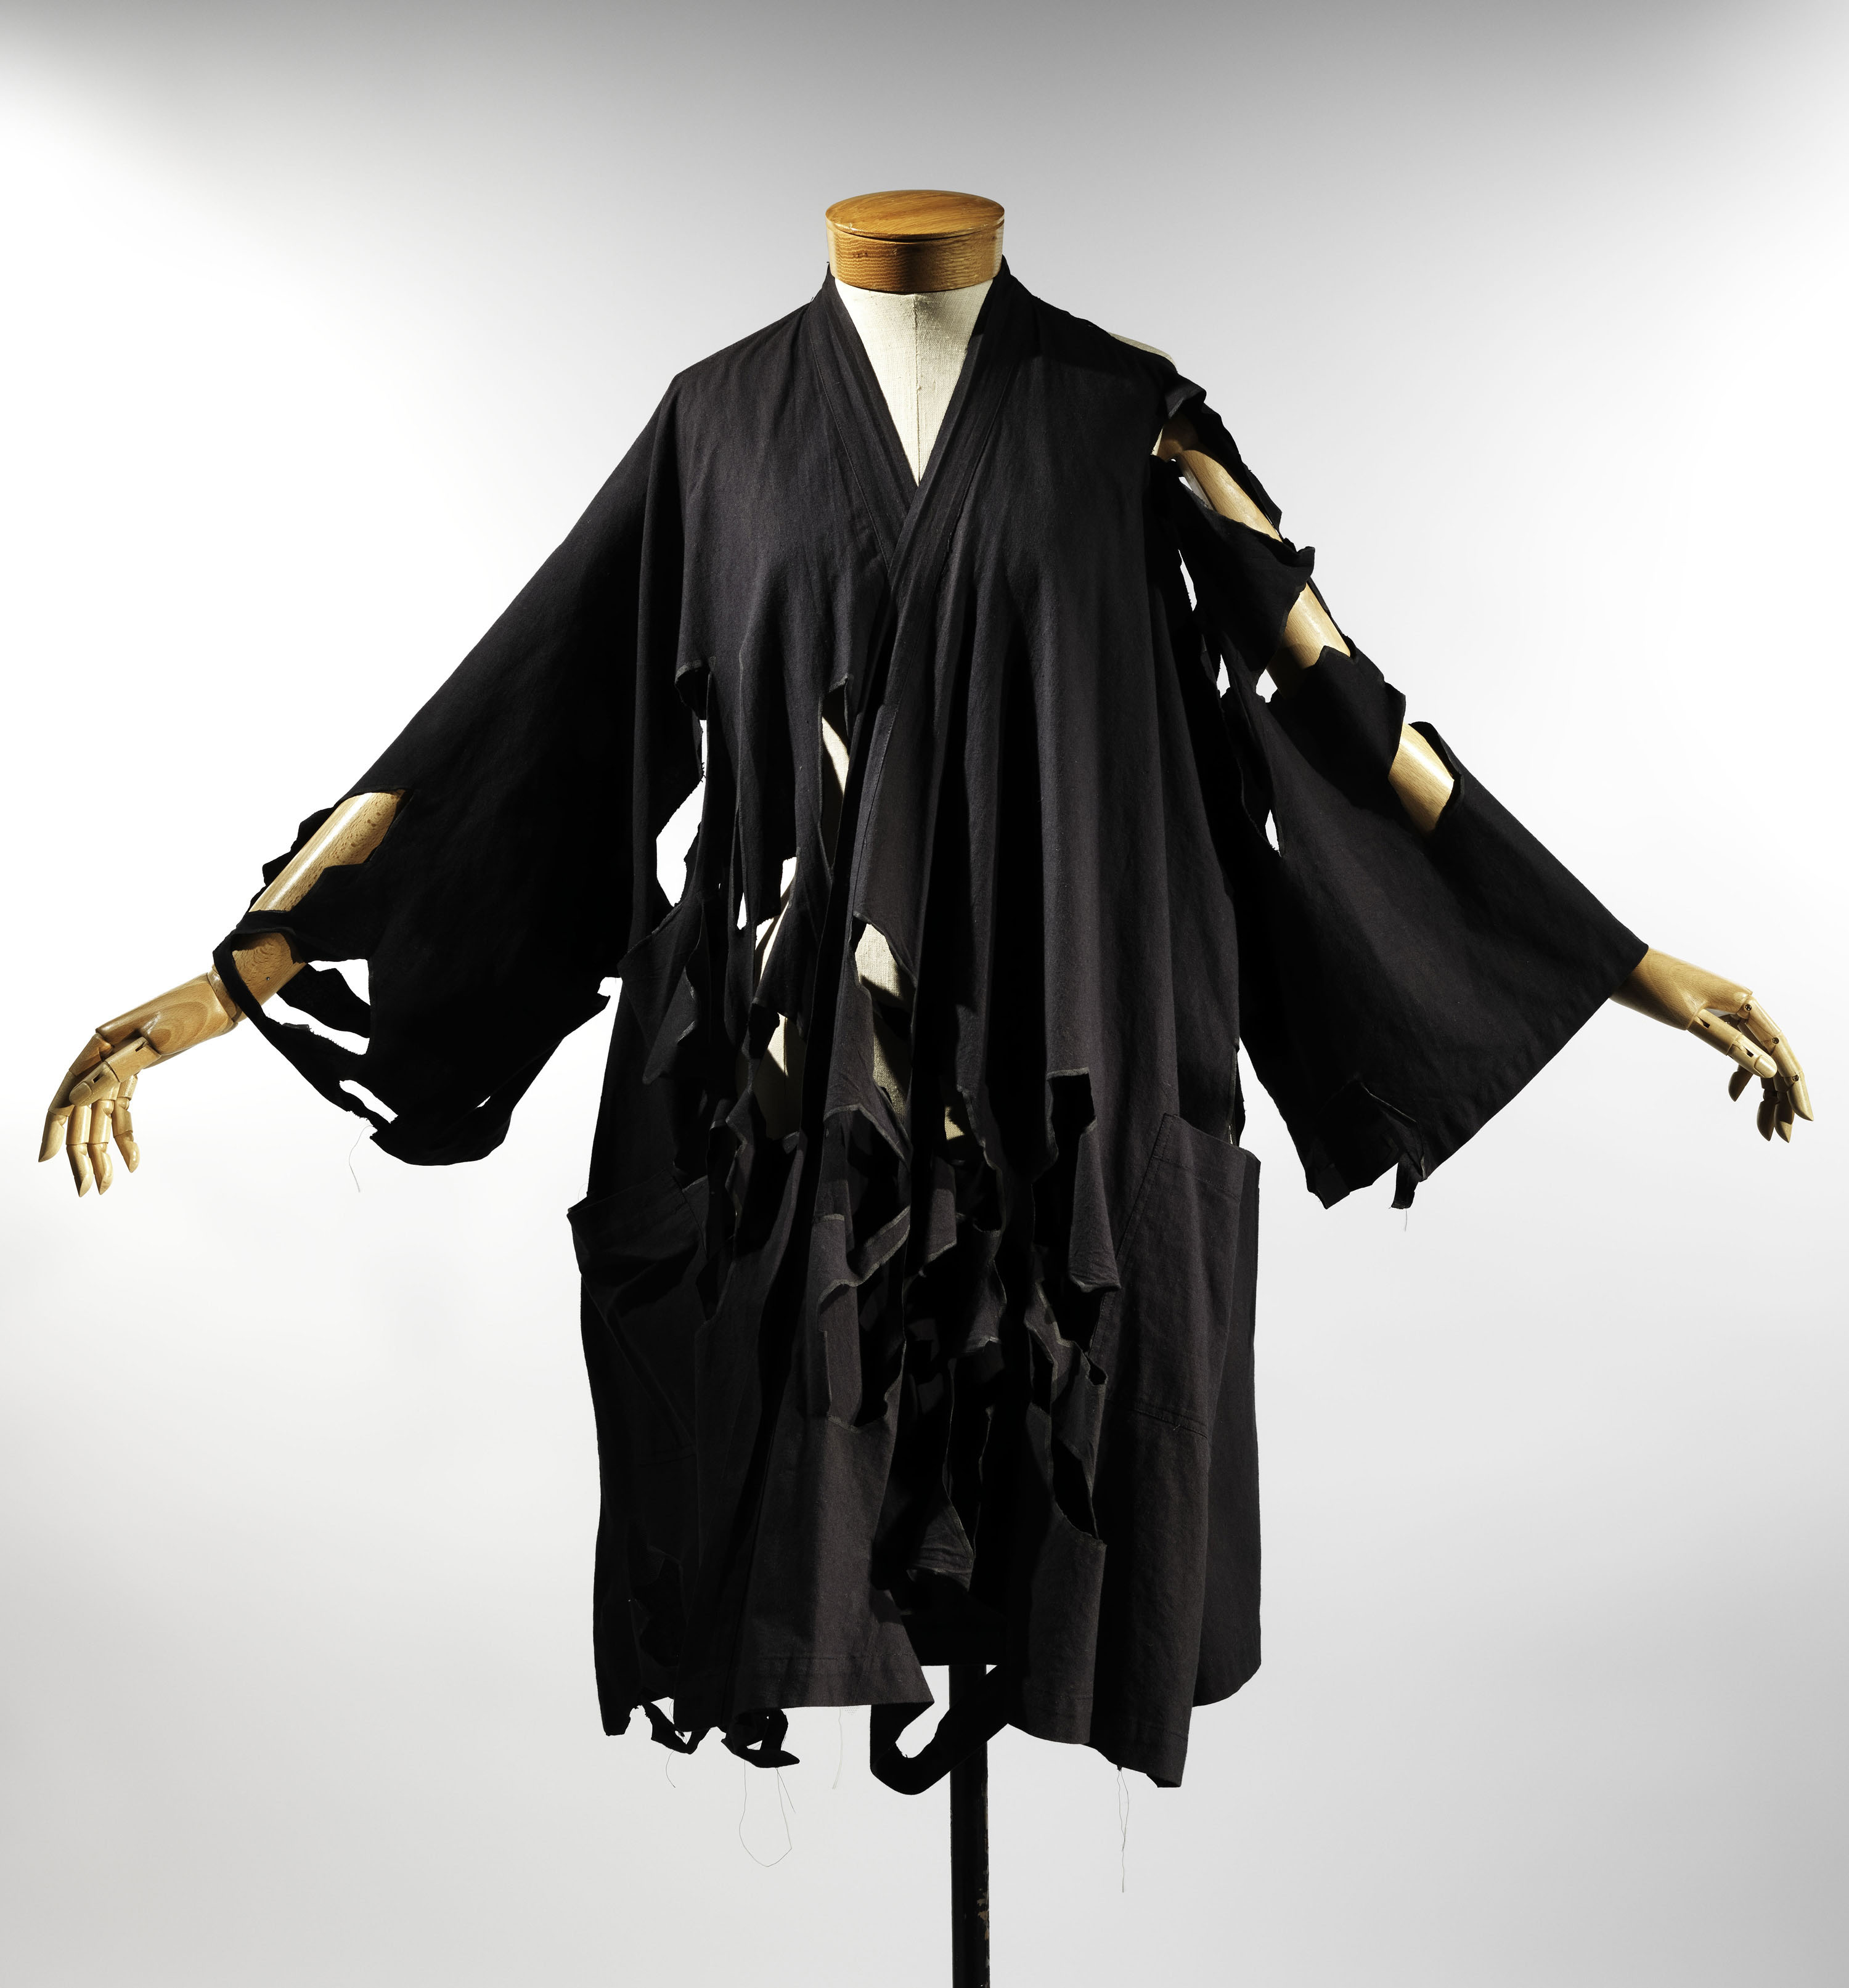 The kimono as an evolving art form met 39 s exhibit in nyc Japanese clothing designers